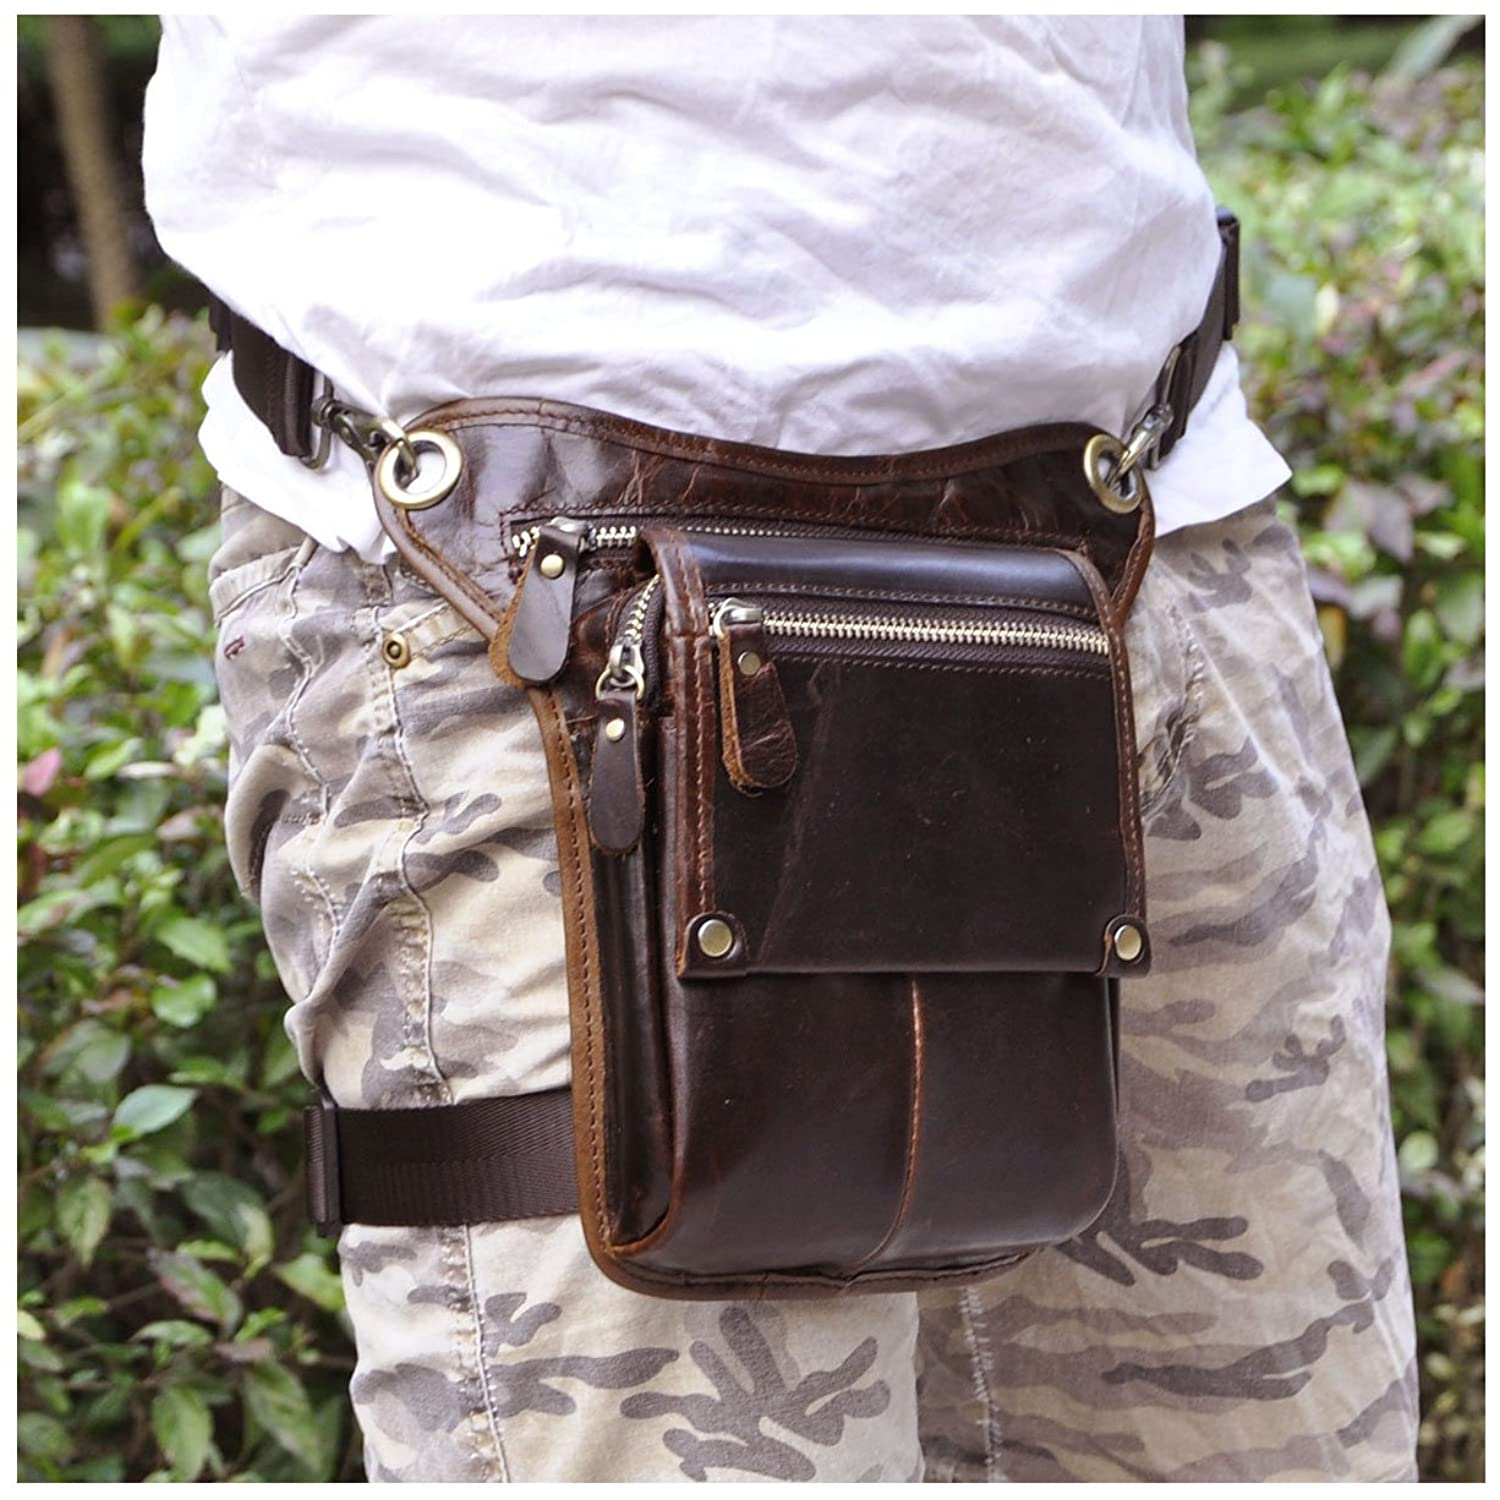 Leather Hip Bag Hip Bum Pack Drop Leg Bag